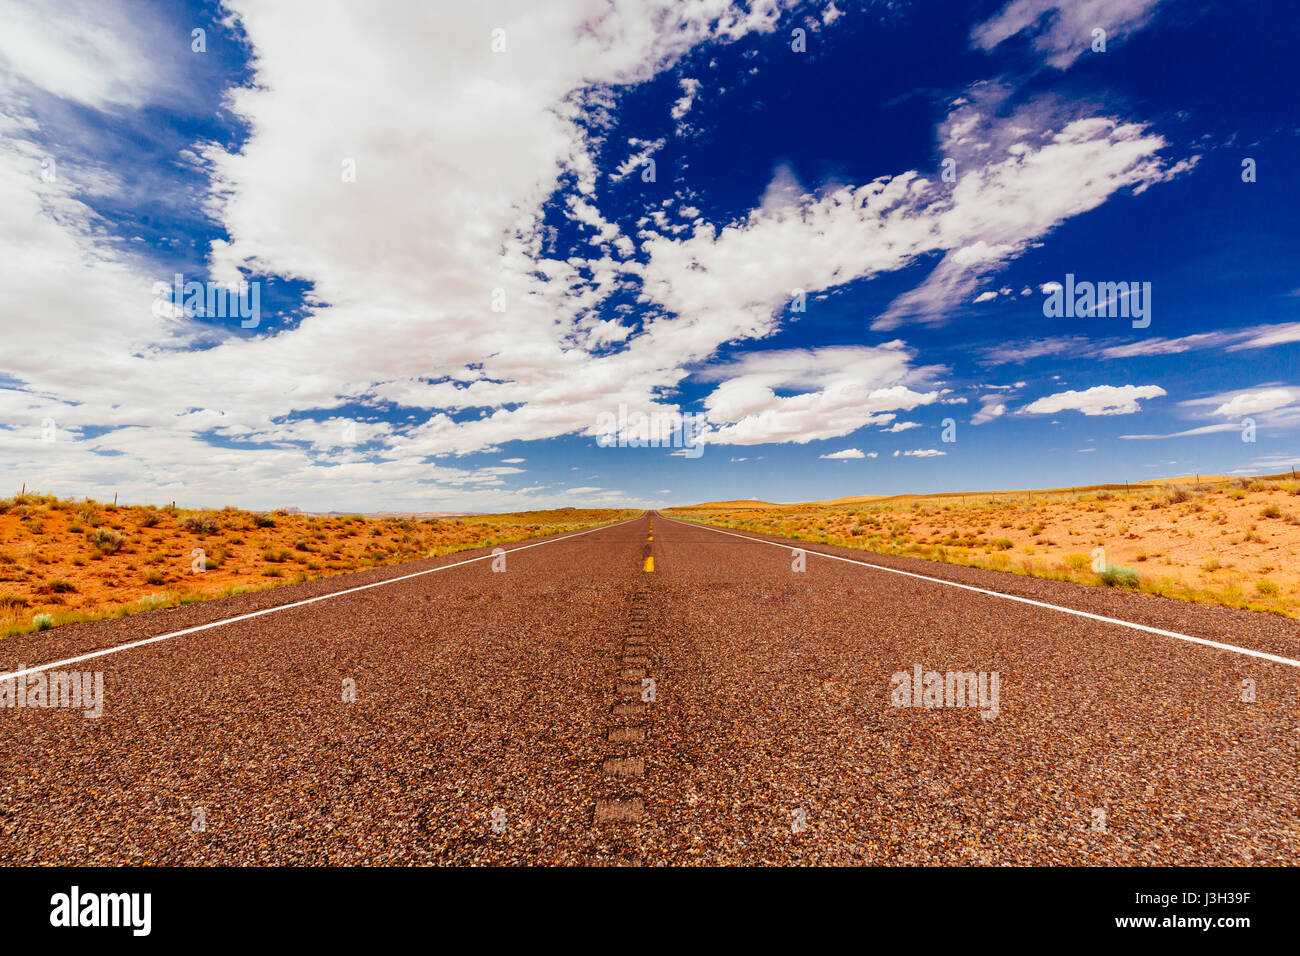 The road goes the distance. Perfectly smooth highway across the endless desert in Emery County, Utah, USA. - Stock Image